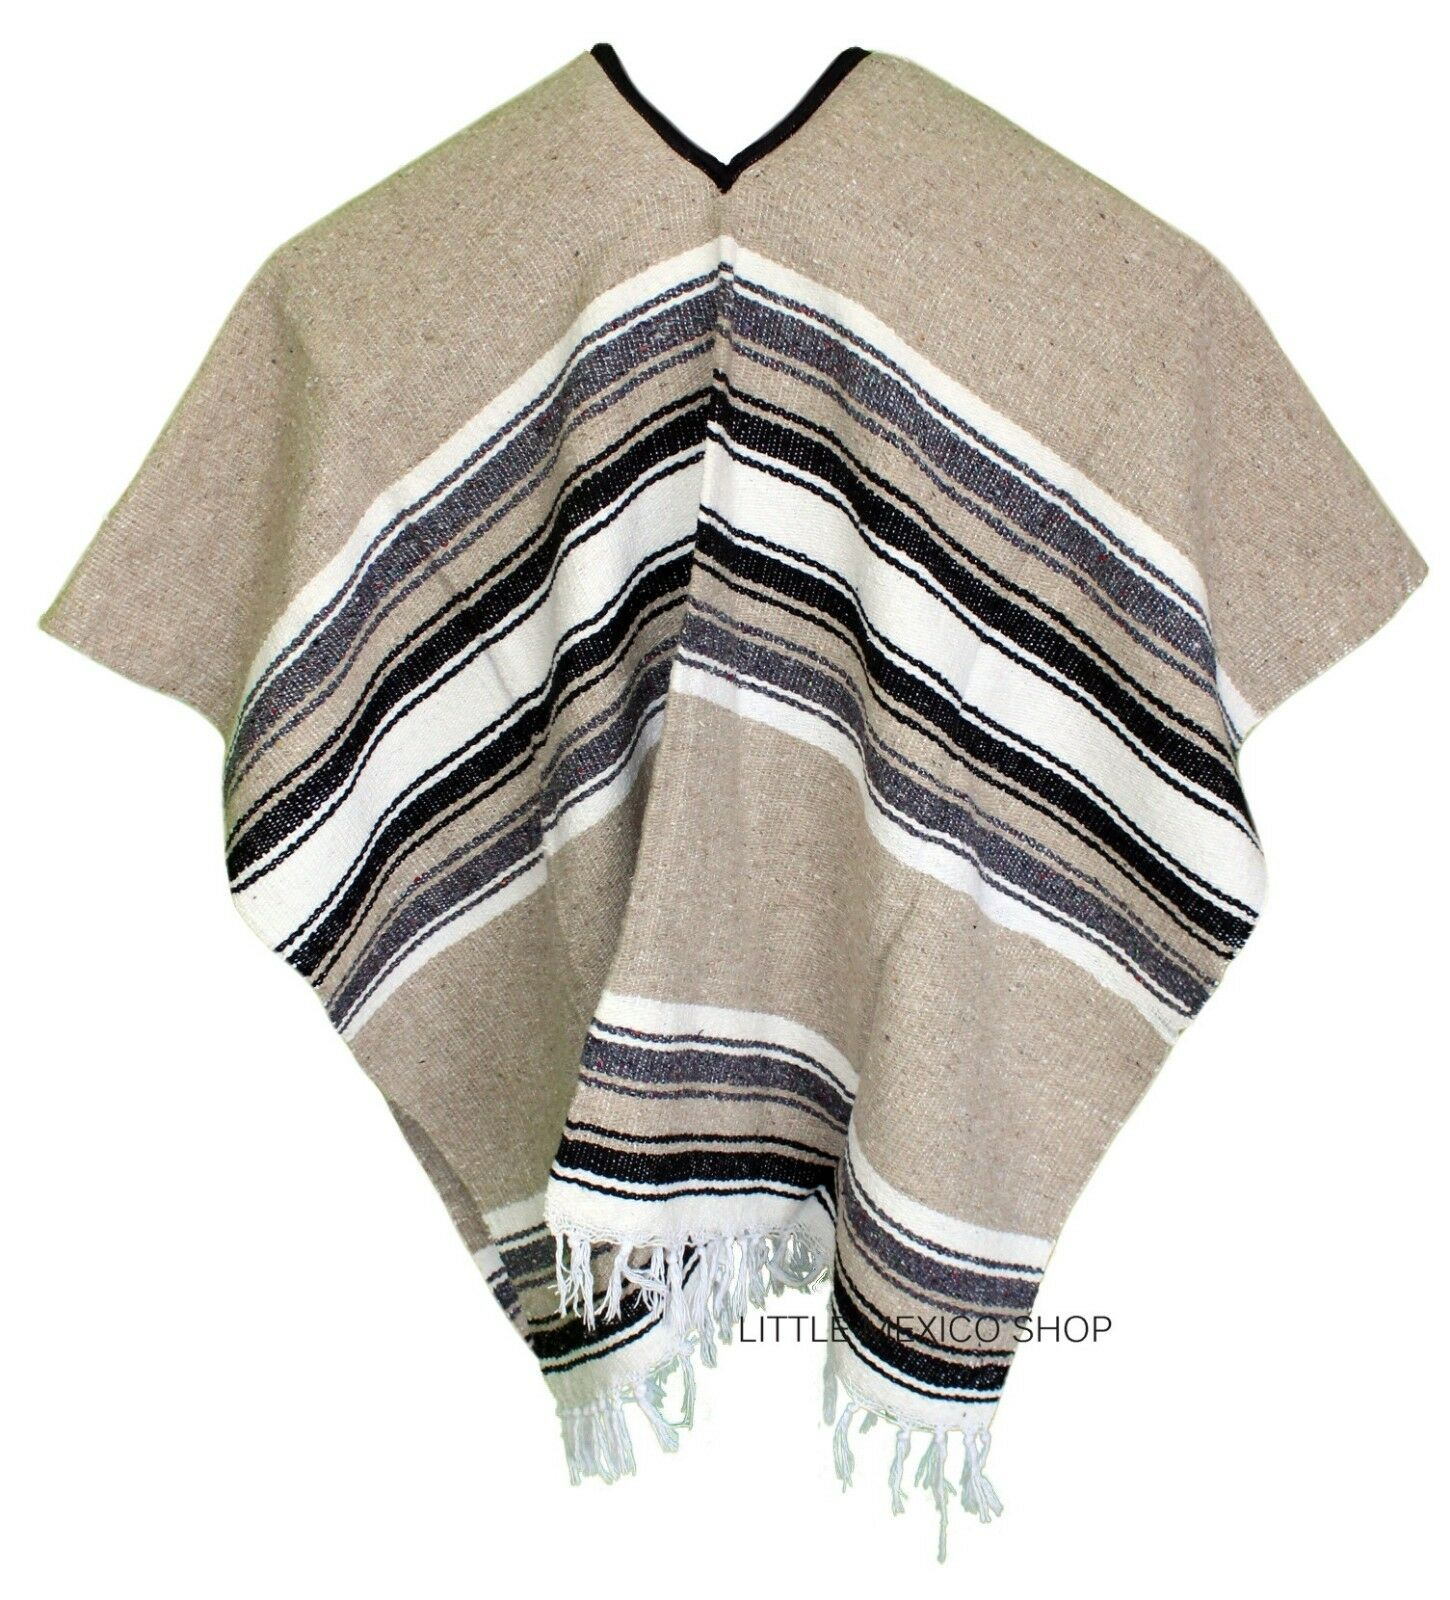 EXTRA WIDE Mexican PONCHO - LIGHT BROWN - ONE SIZE FITS ALL Gaban BIG AND TALL